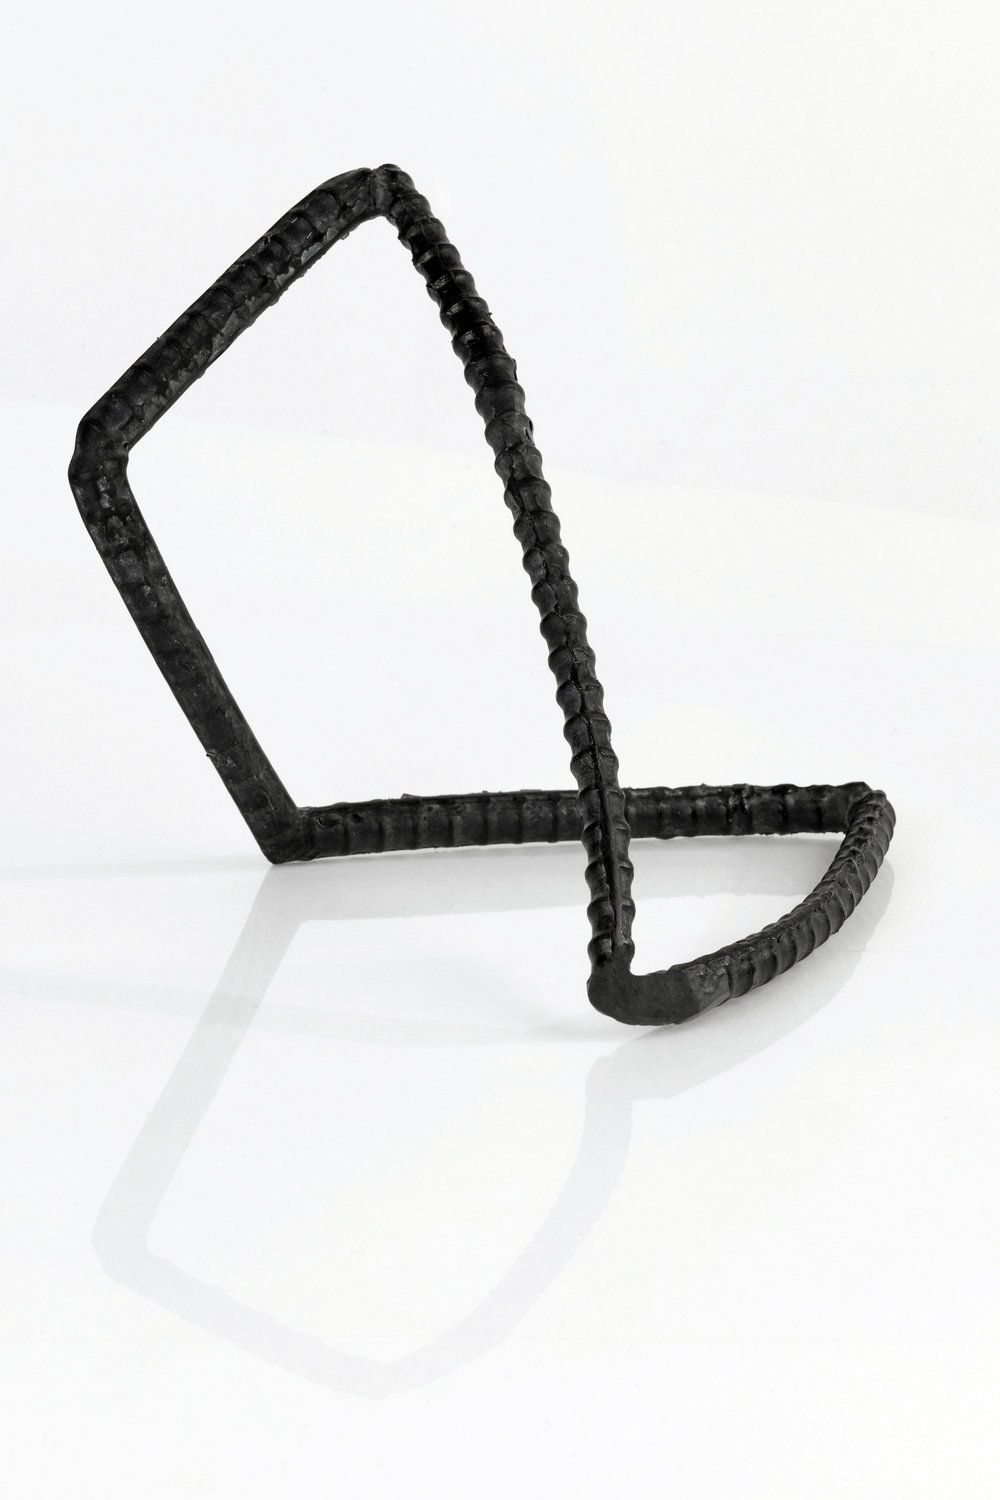 """Untitled , Cast Lead Crystal (Black Glass), 10"""" x 10"""" x 12""""  Collection of the Ernsting Stiftung Museum"""